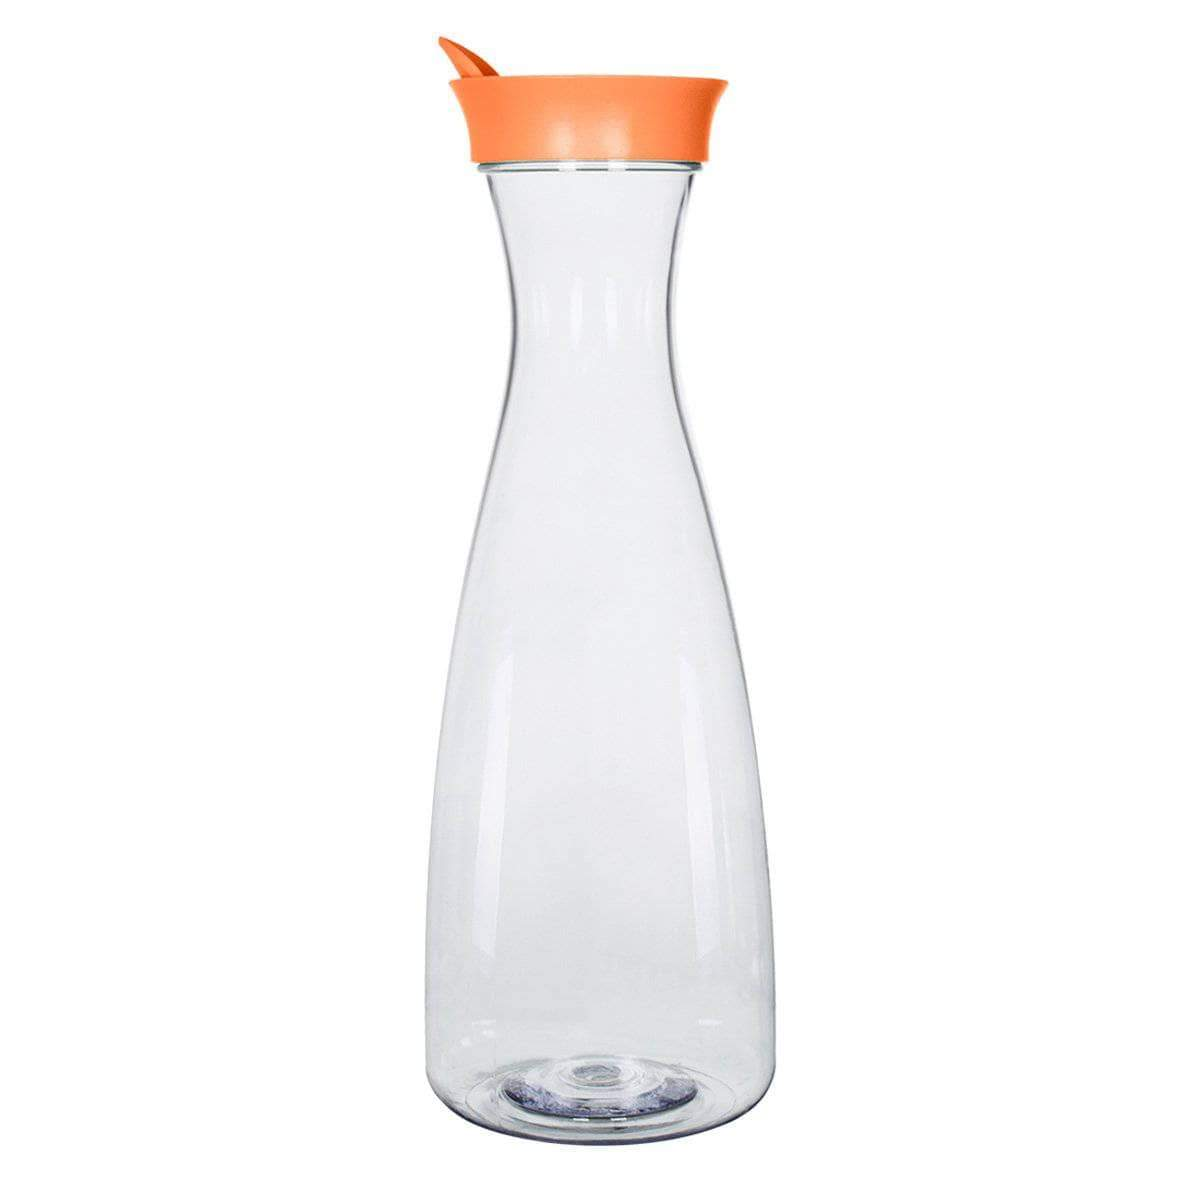 Geo Bottles Pitchers Orange 1.5 Liter (50 oz.) BPA FREE Plastic Carafe Pitcher Decanter Jug with Green Lid